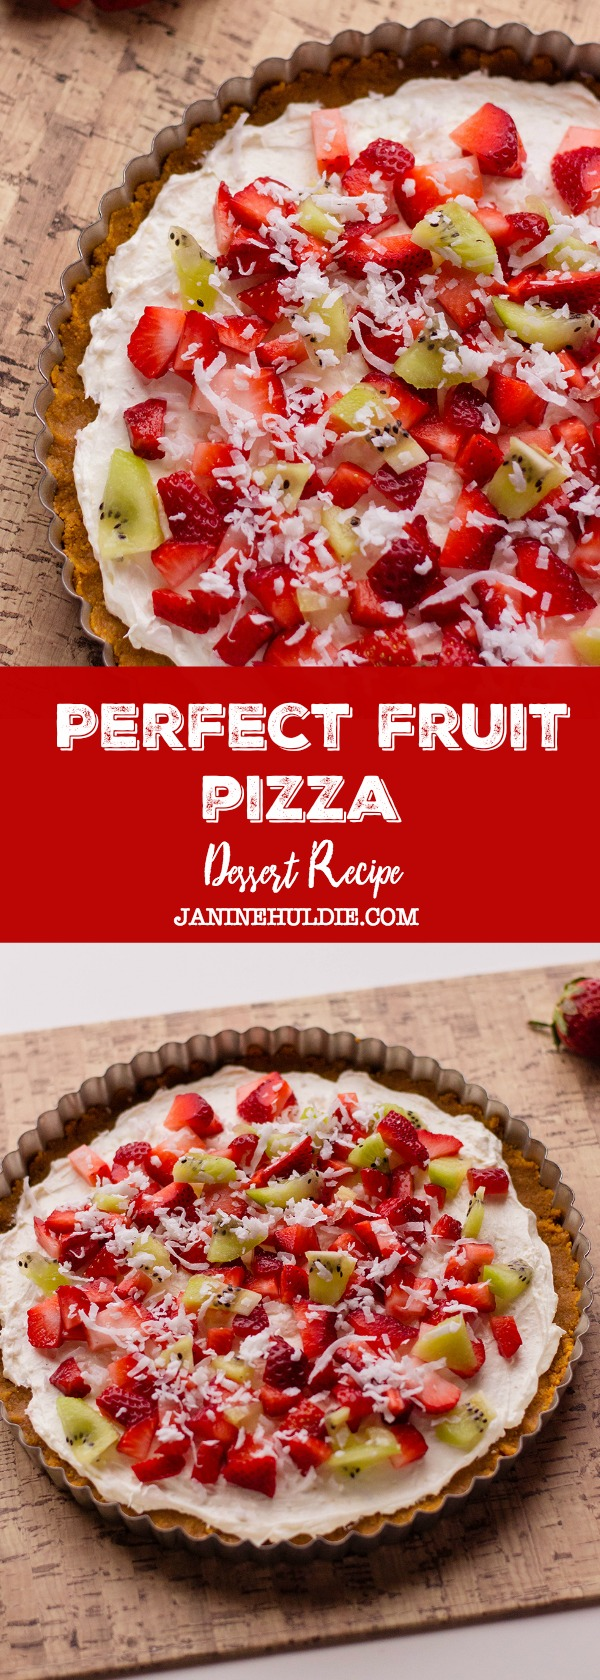 Perfect Dessert Fruit Pizza Recipe